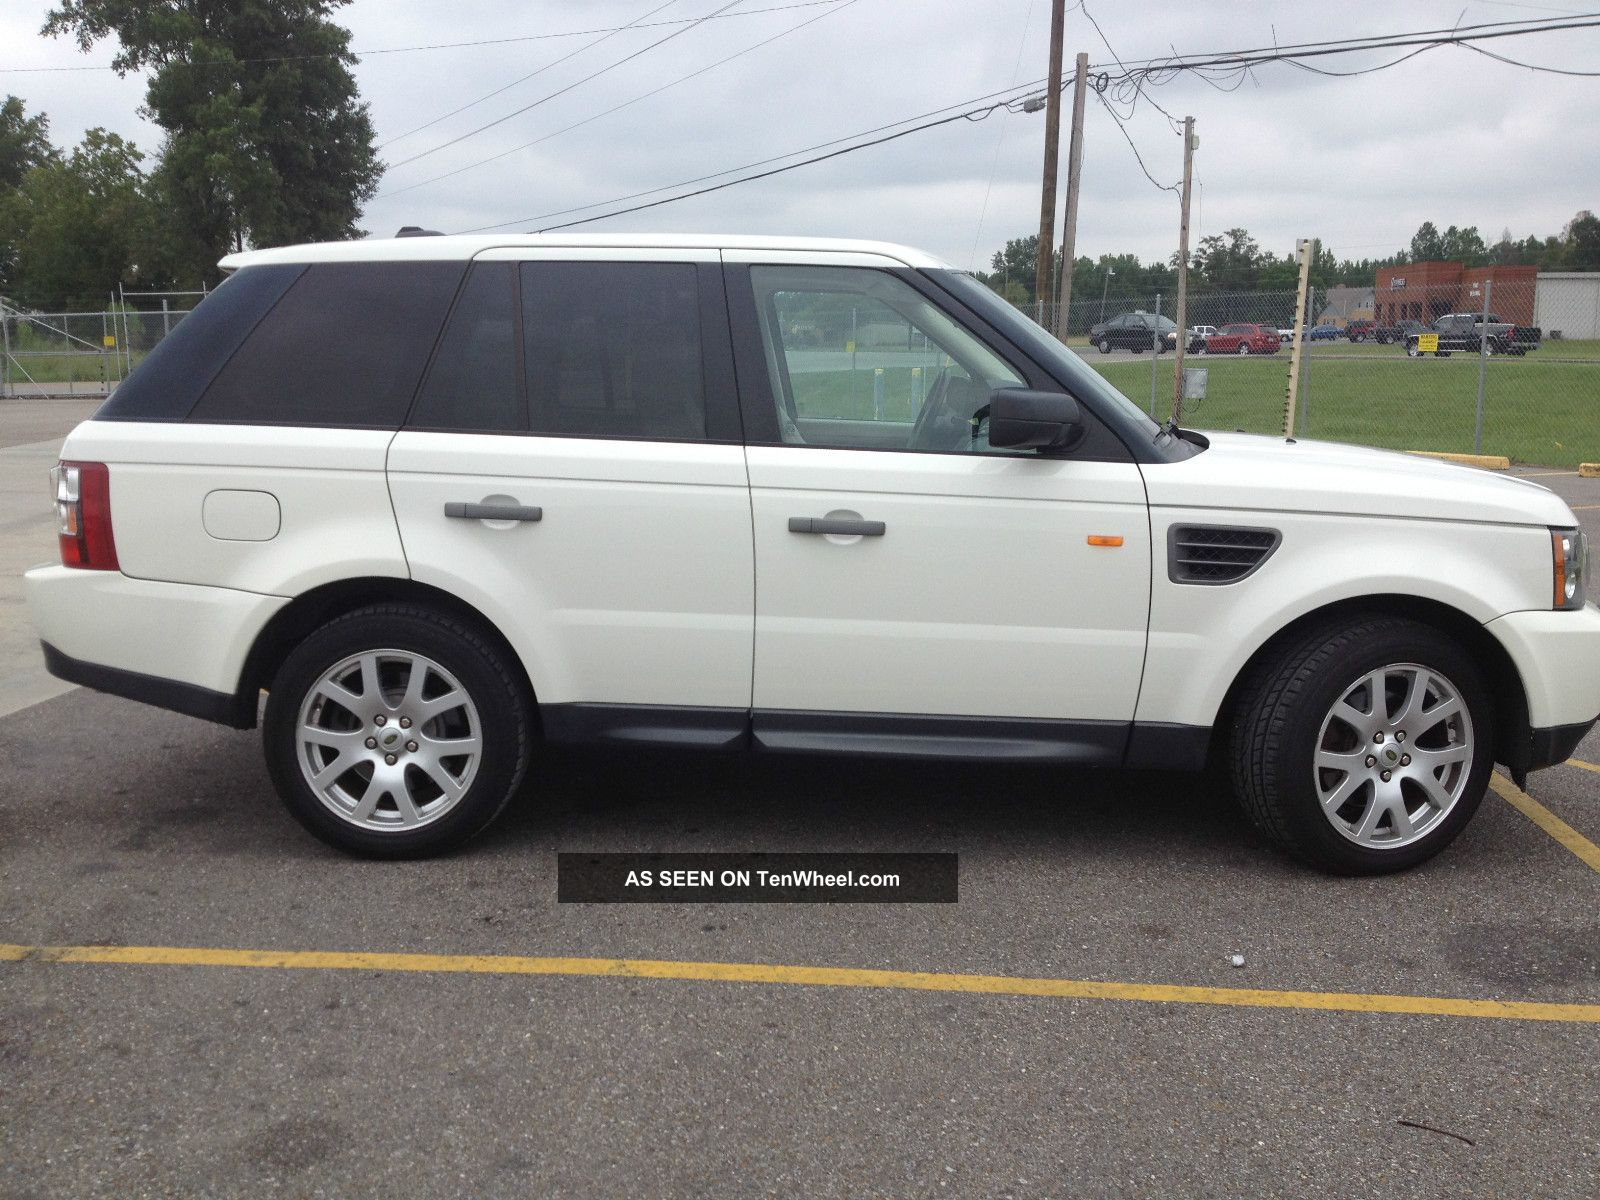 2008 white range rover sport. Black Bedroom Furniture Sets. Home Design Ideas